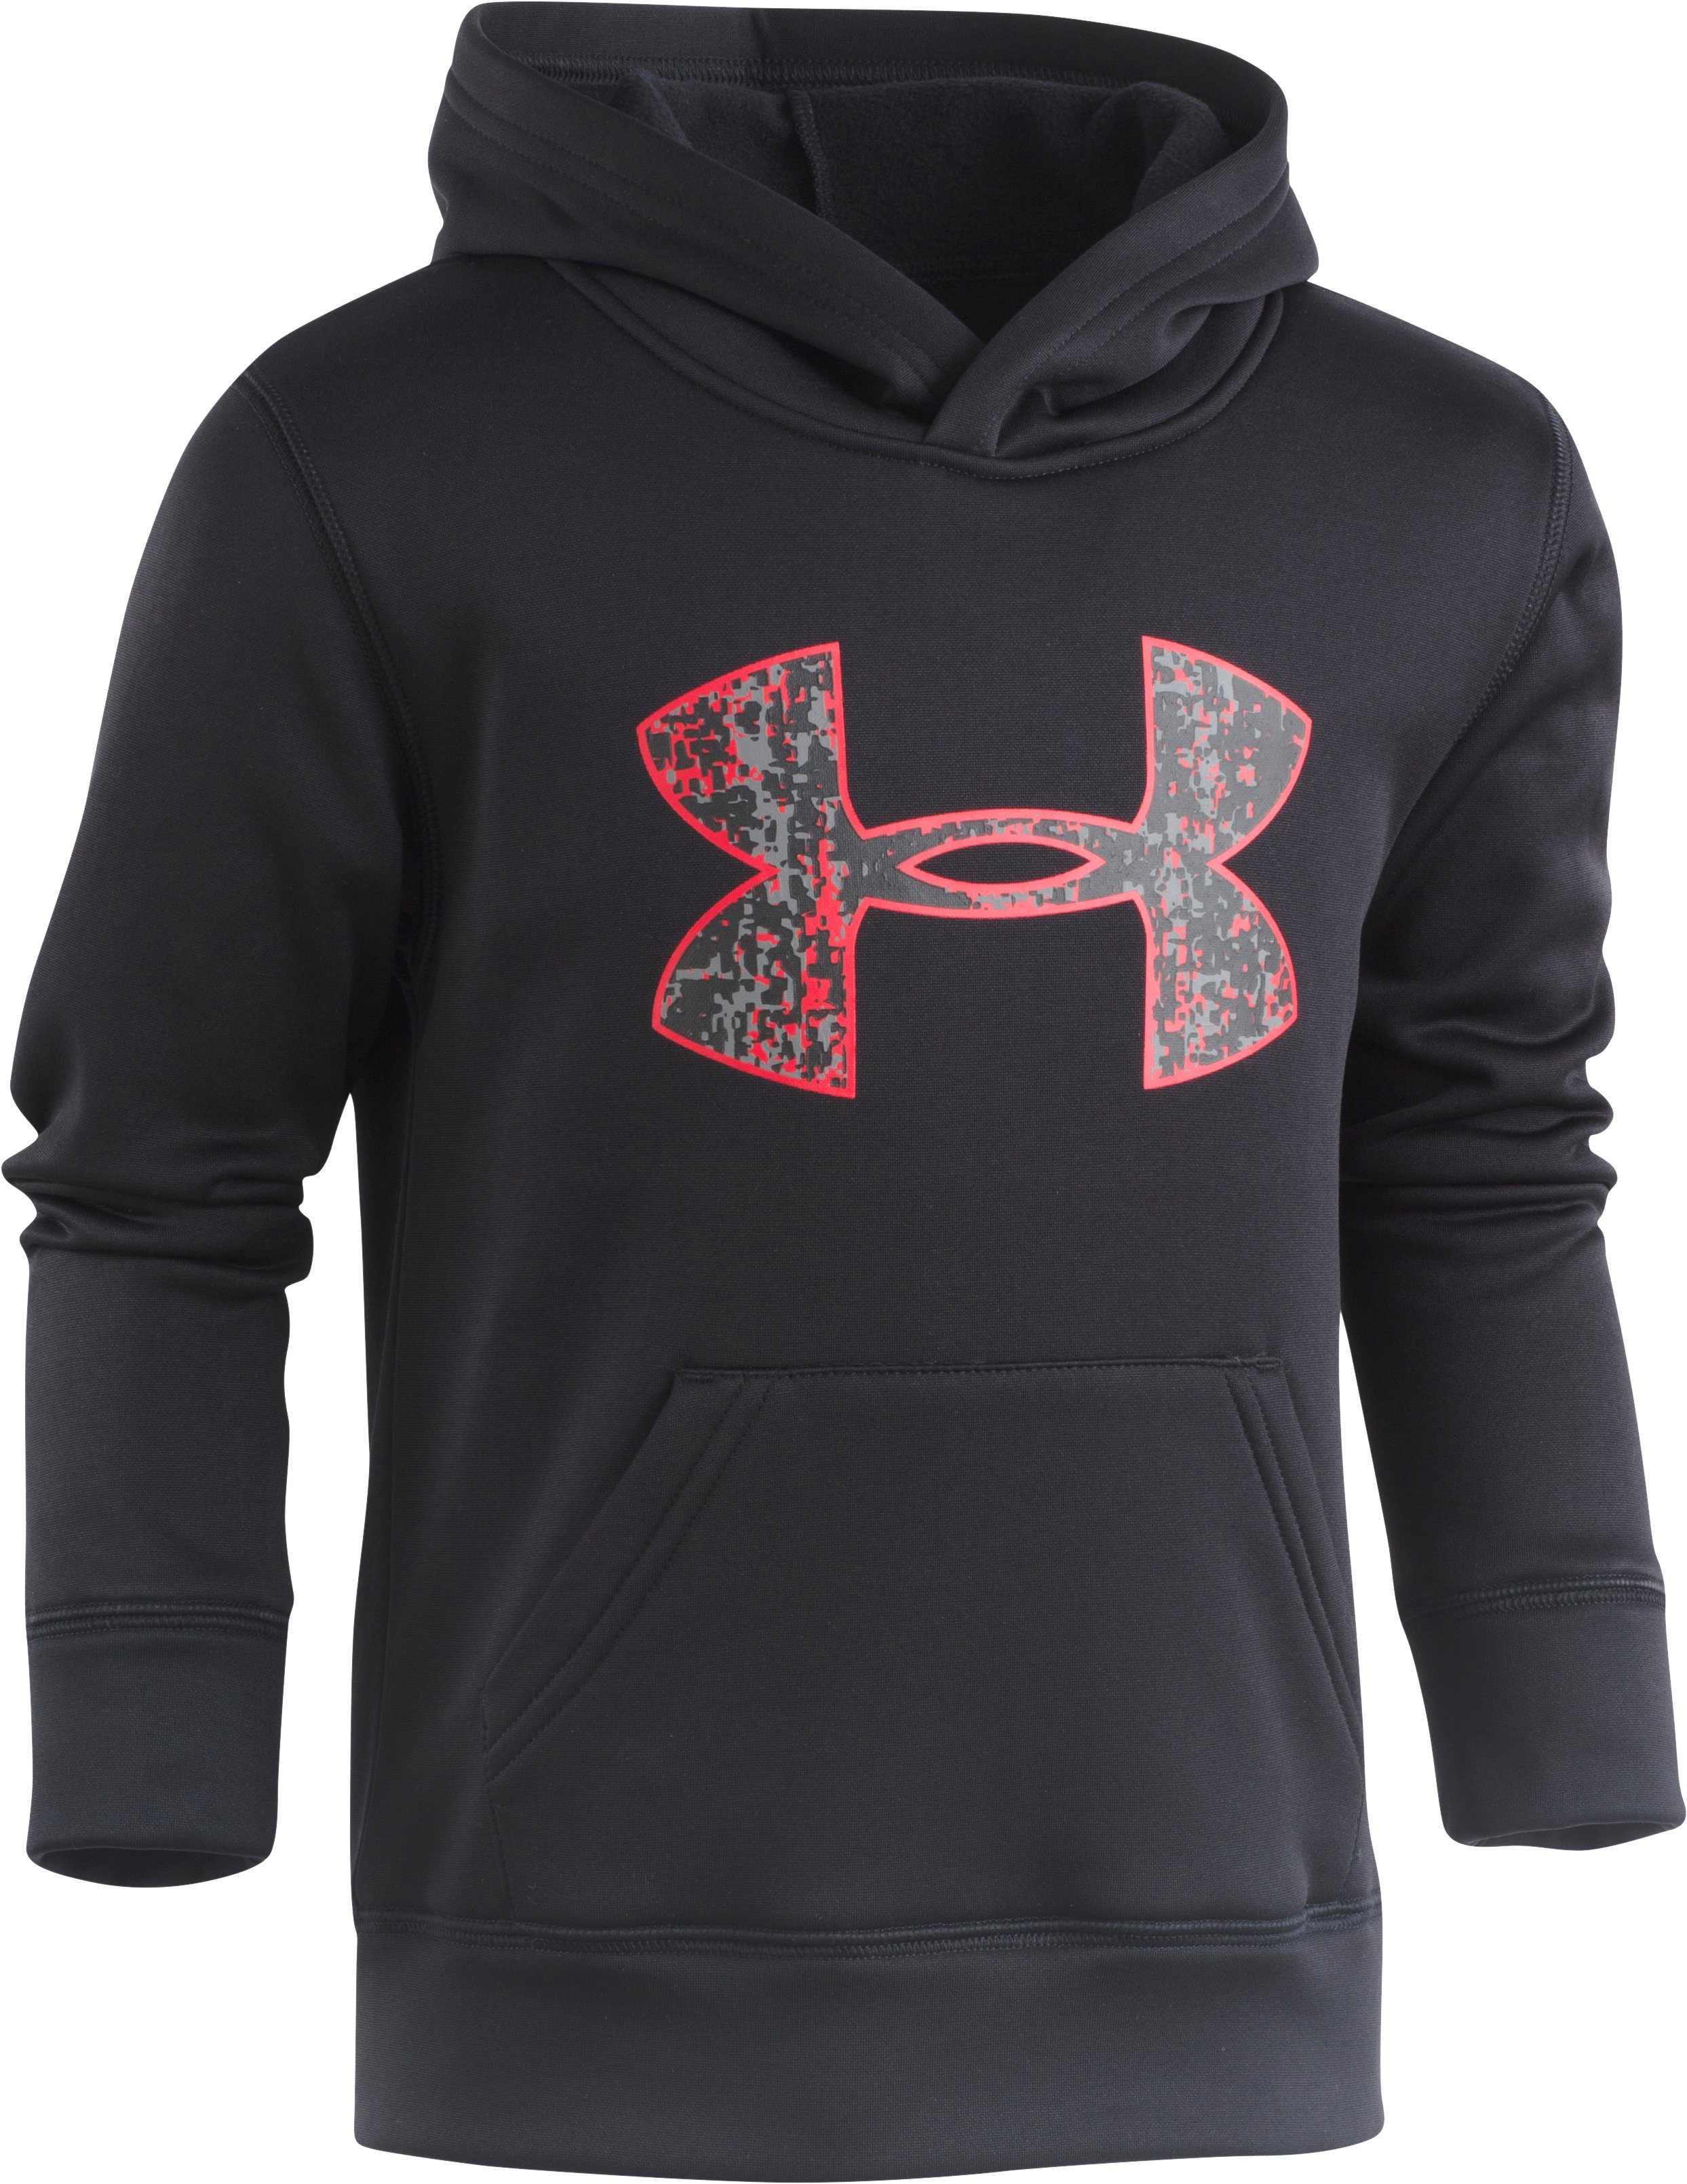 Boys' Pre-School UA Digital City Pullover Hoodie, Black